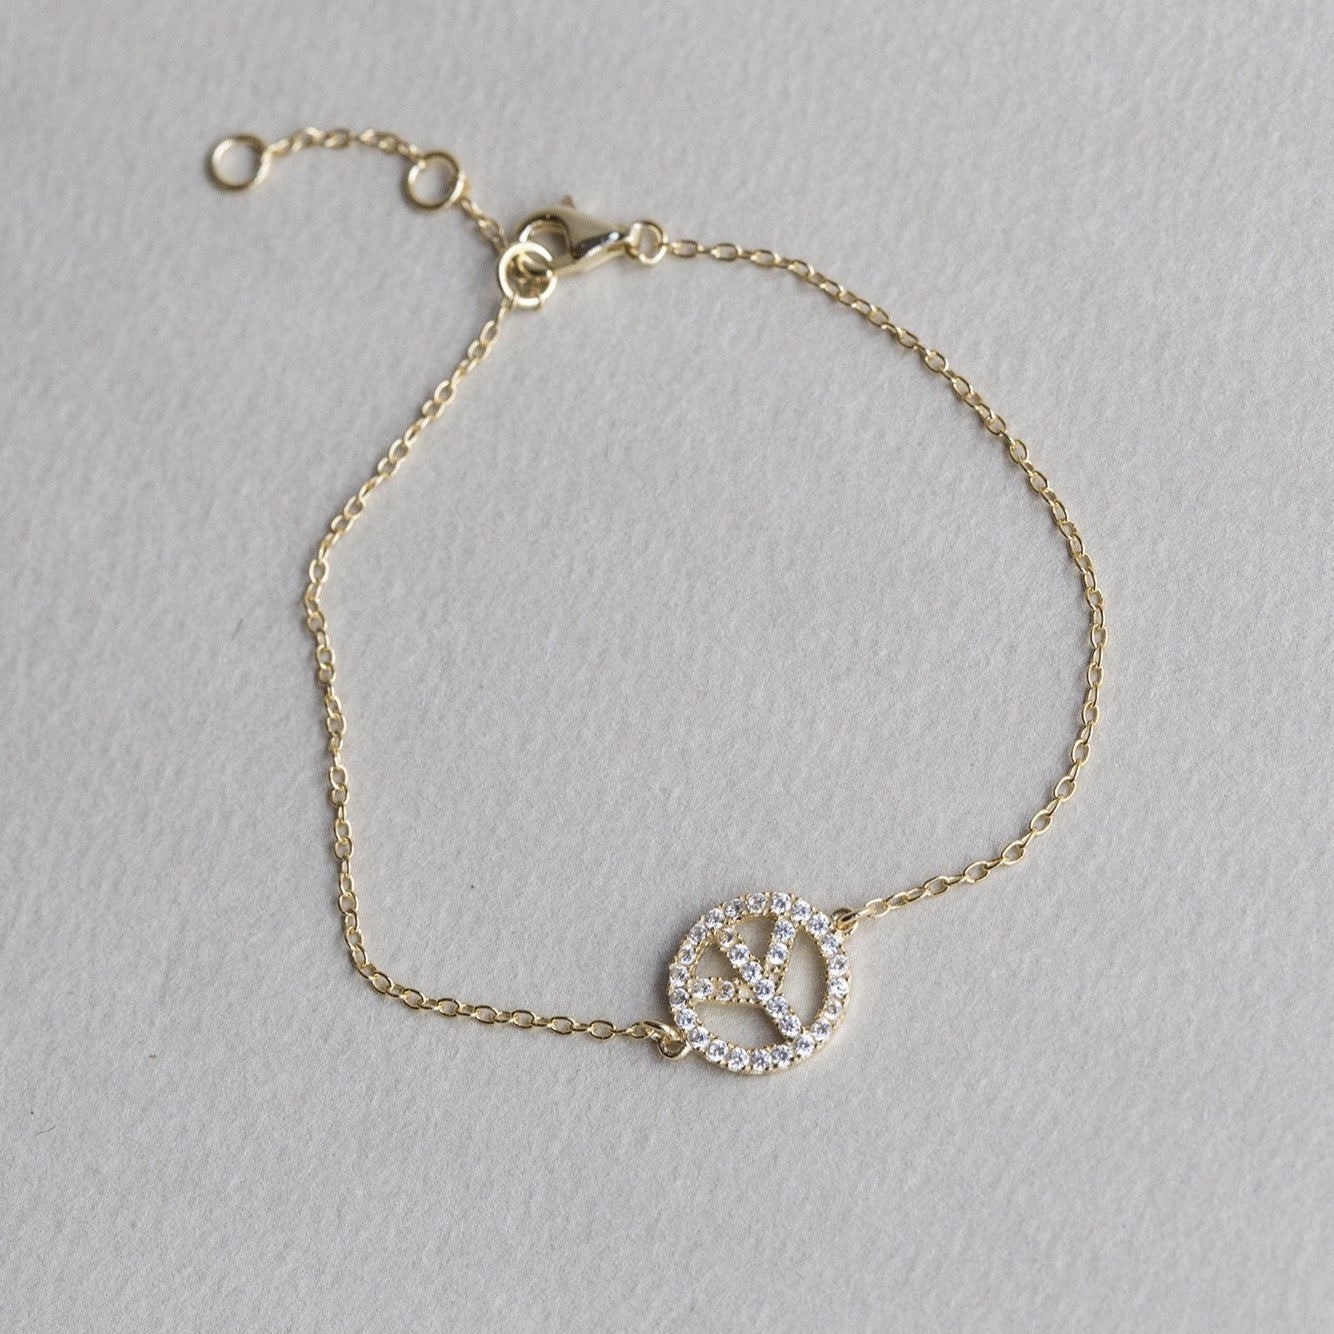 crystal peace symbol bracelet from the same collection is also for sale on feltlondon.com